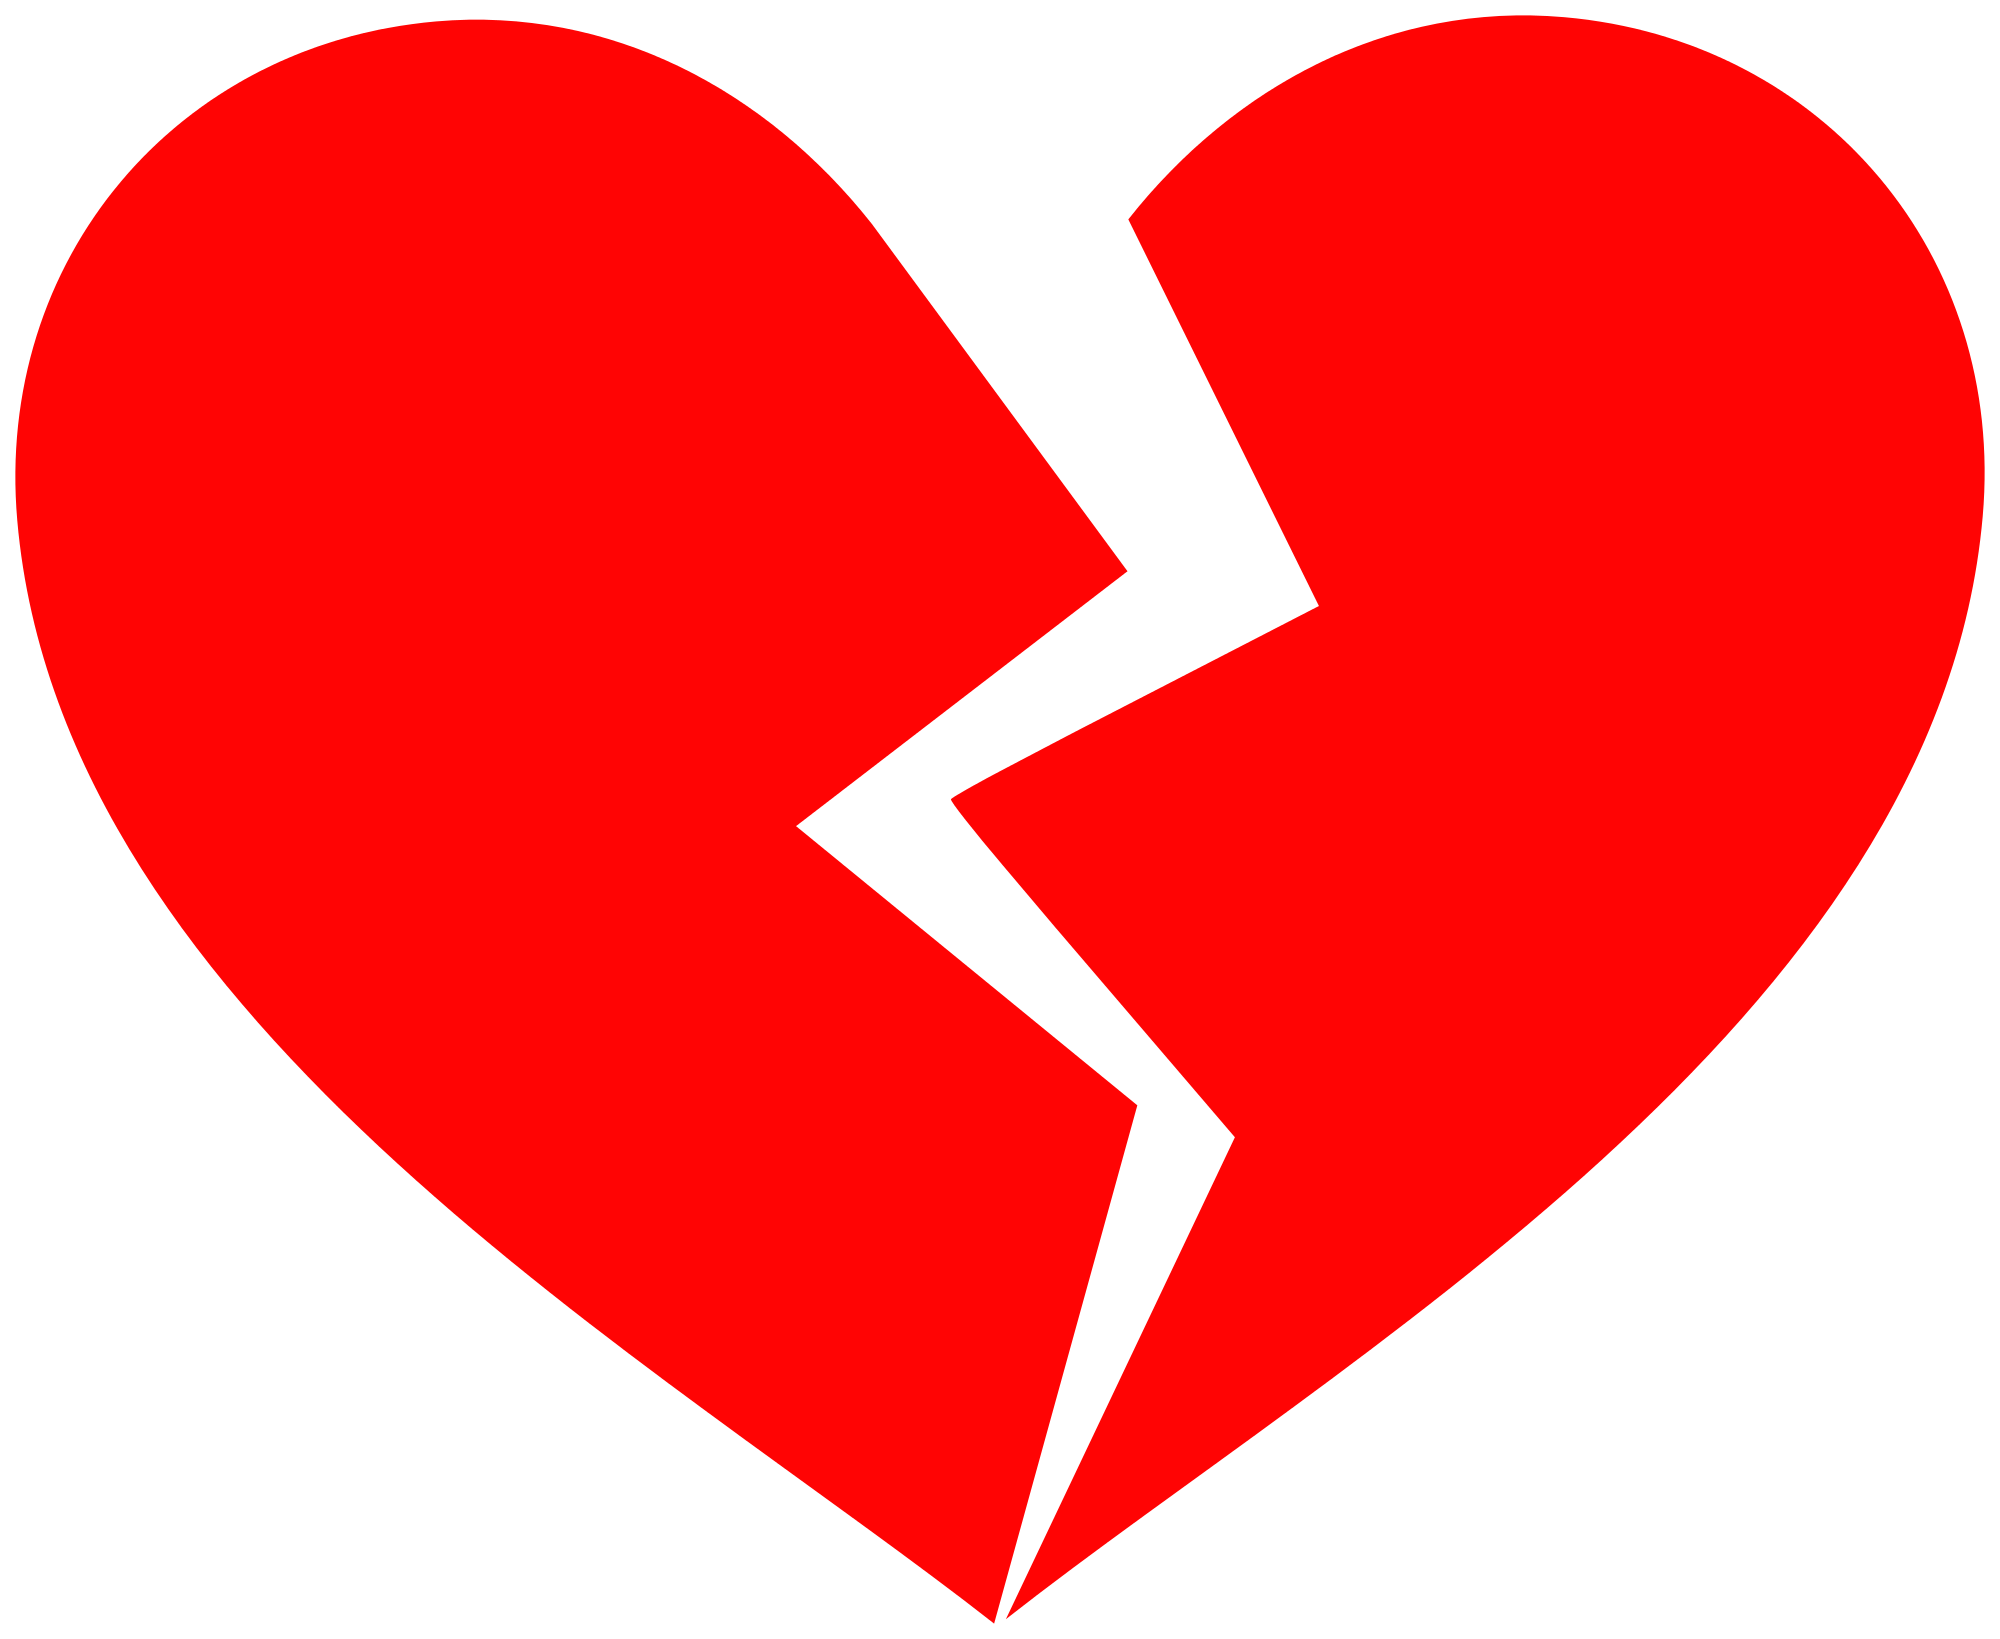 Tired heart clipart jpg royalty free download 55 Best Broken Heart Pictures And Images jpg royalty free download